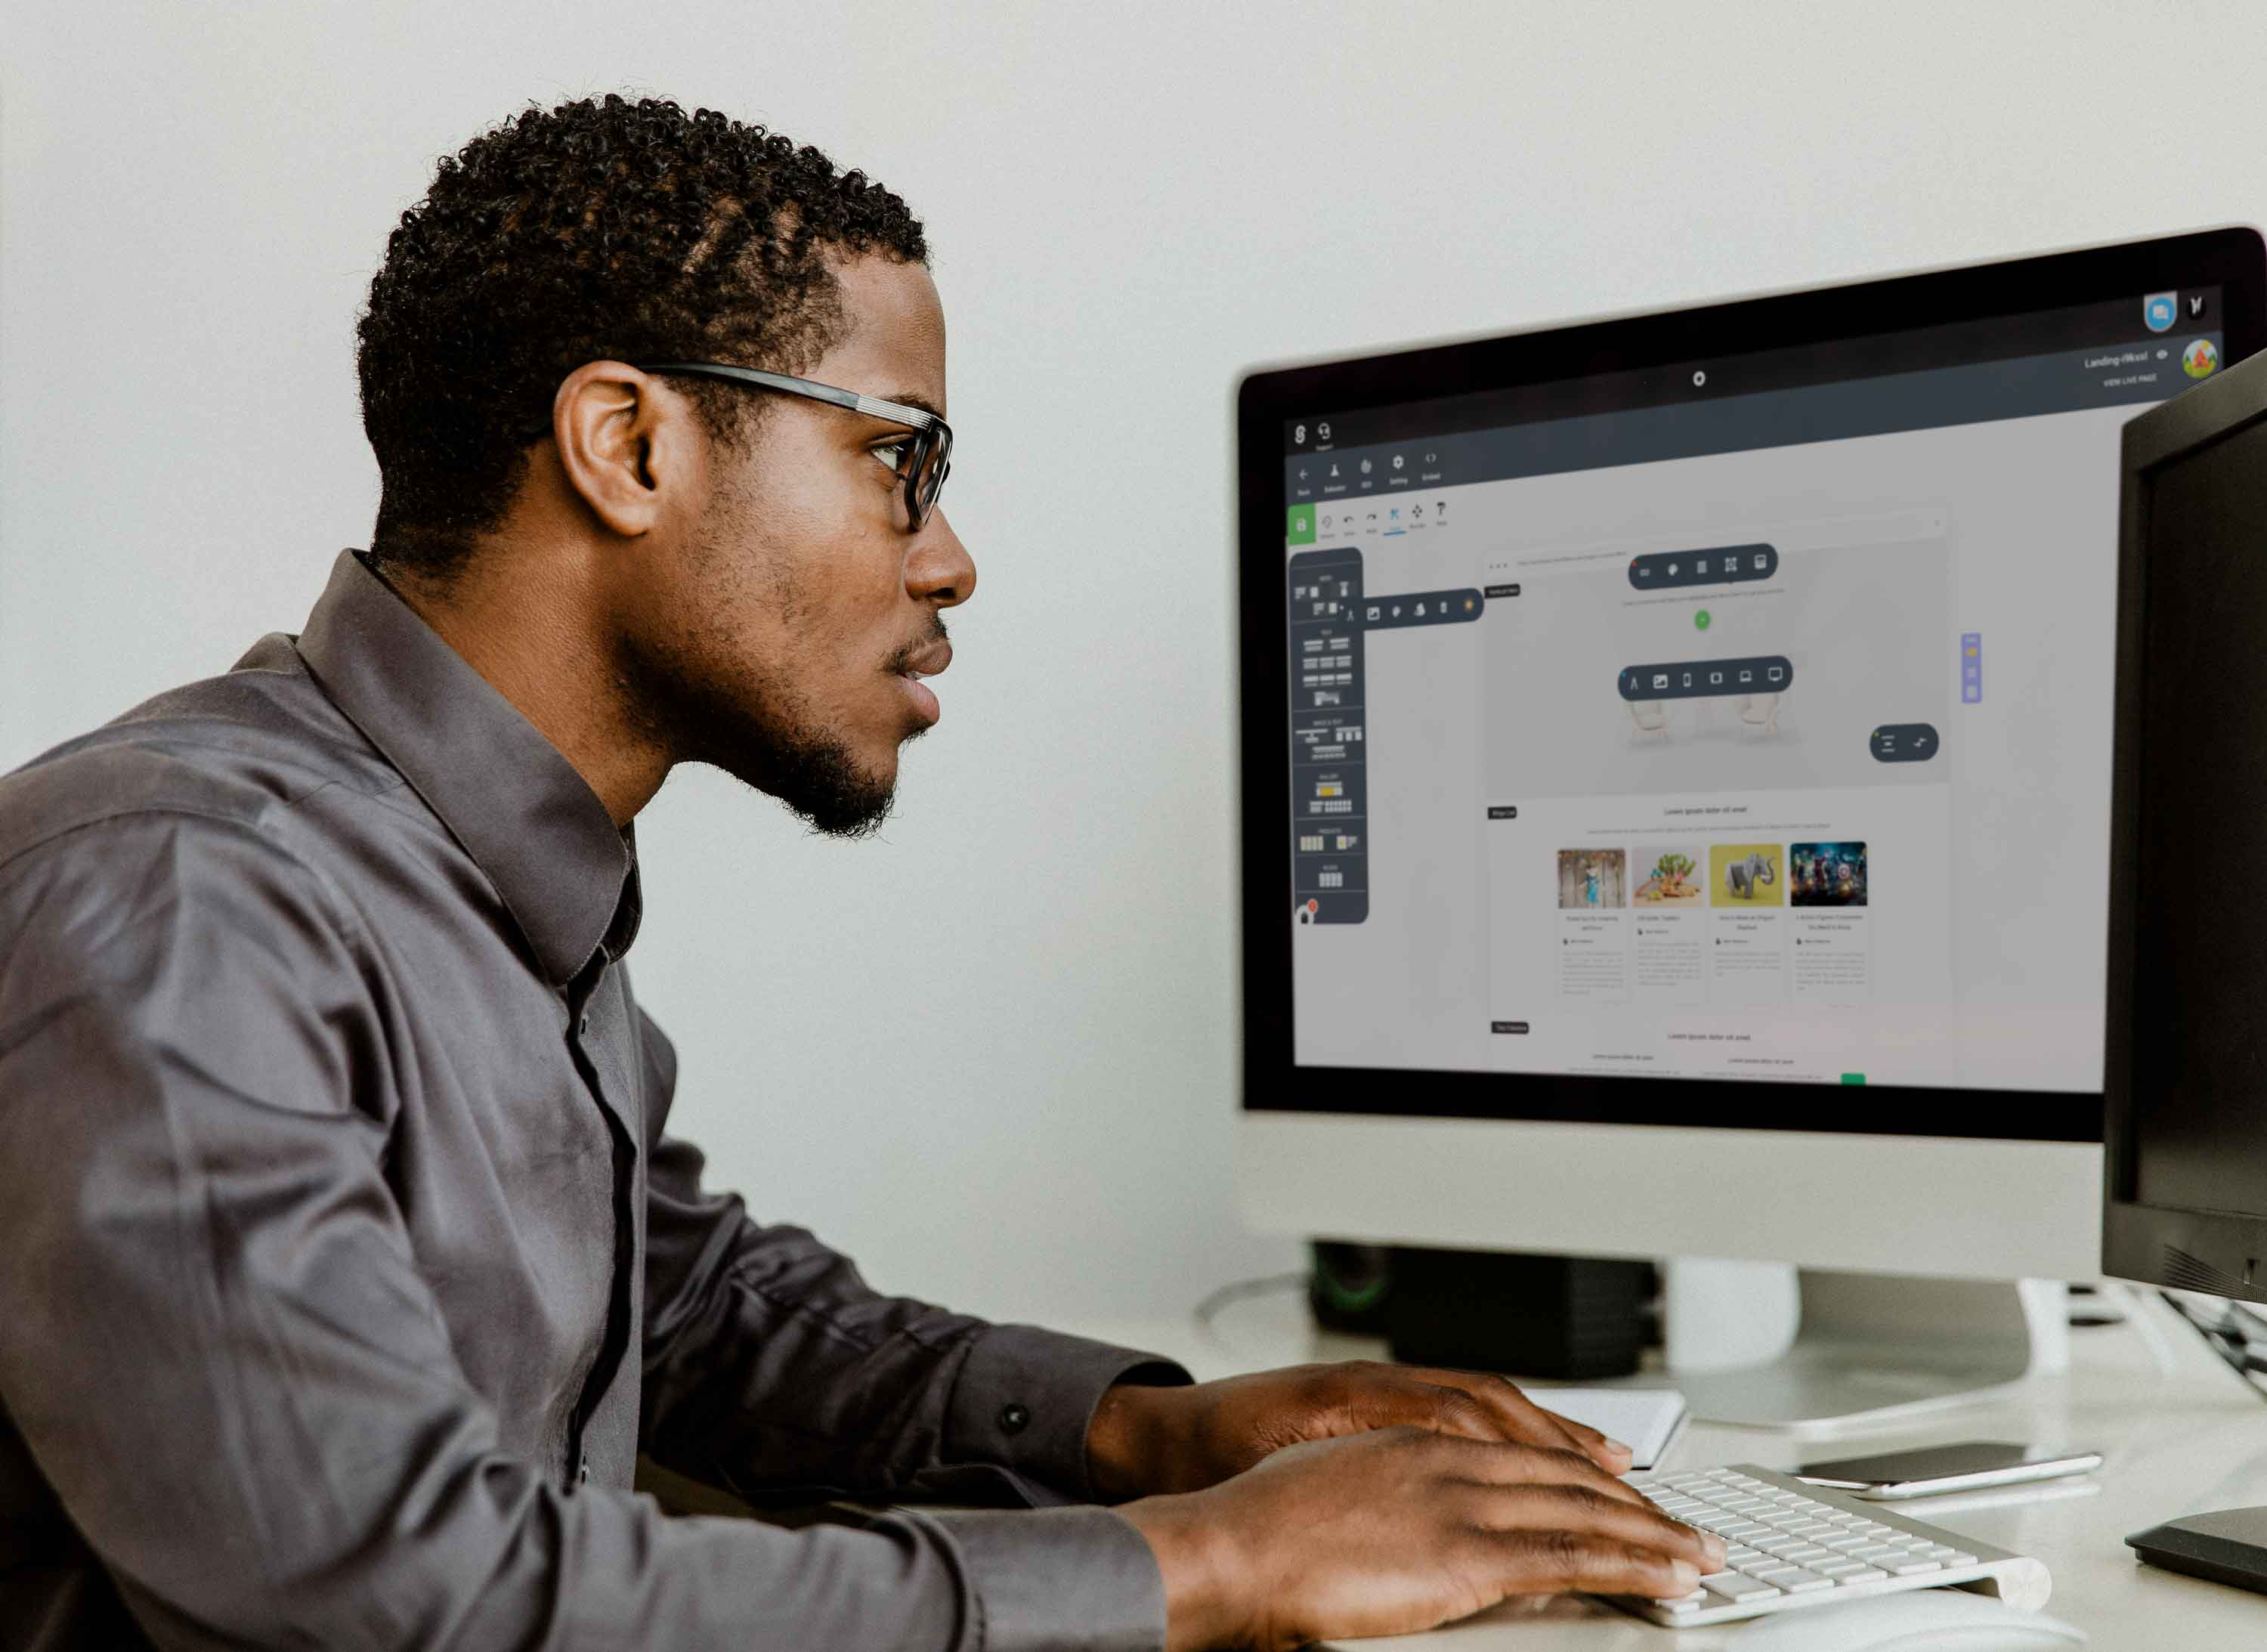 eCommerce freelancers are online employees that specialize in the eCommerce industry and